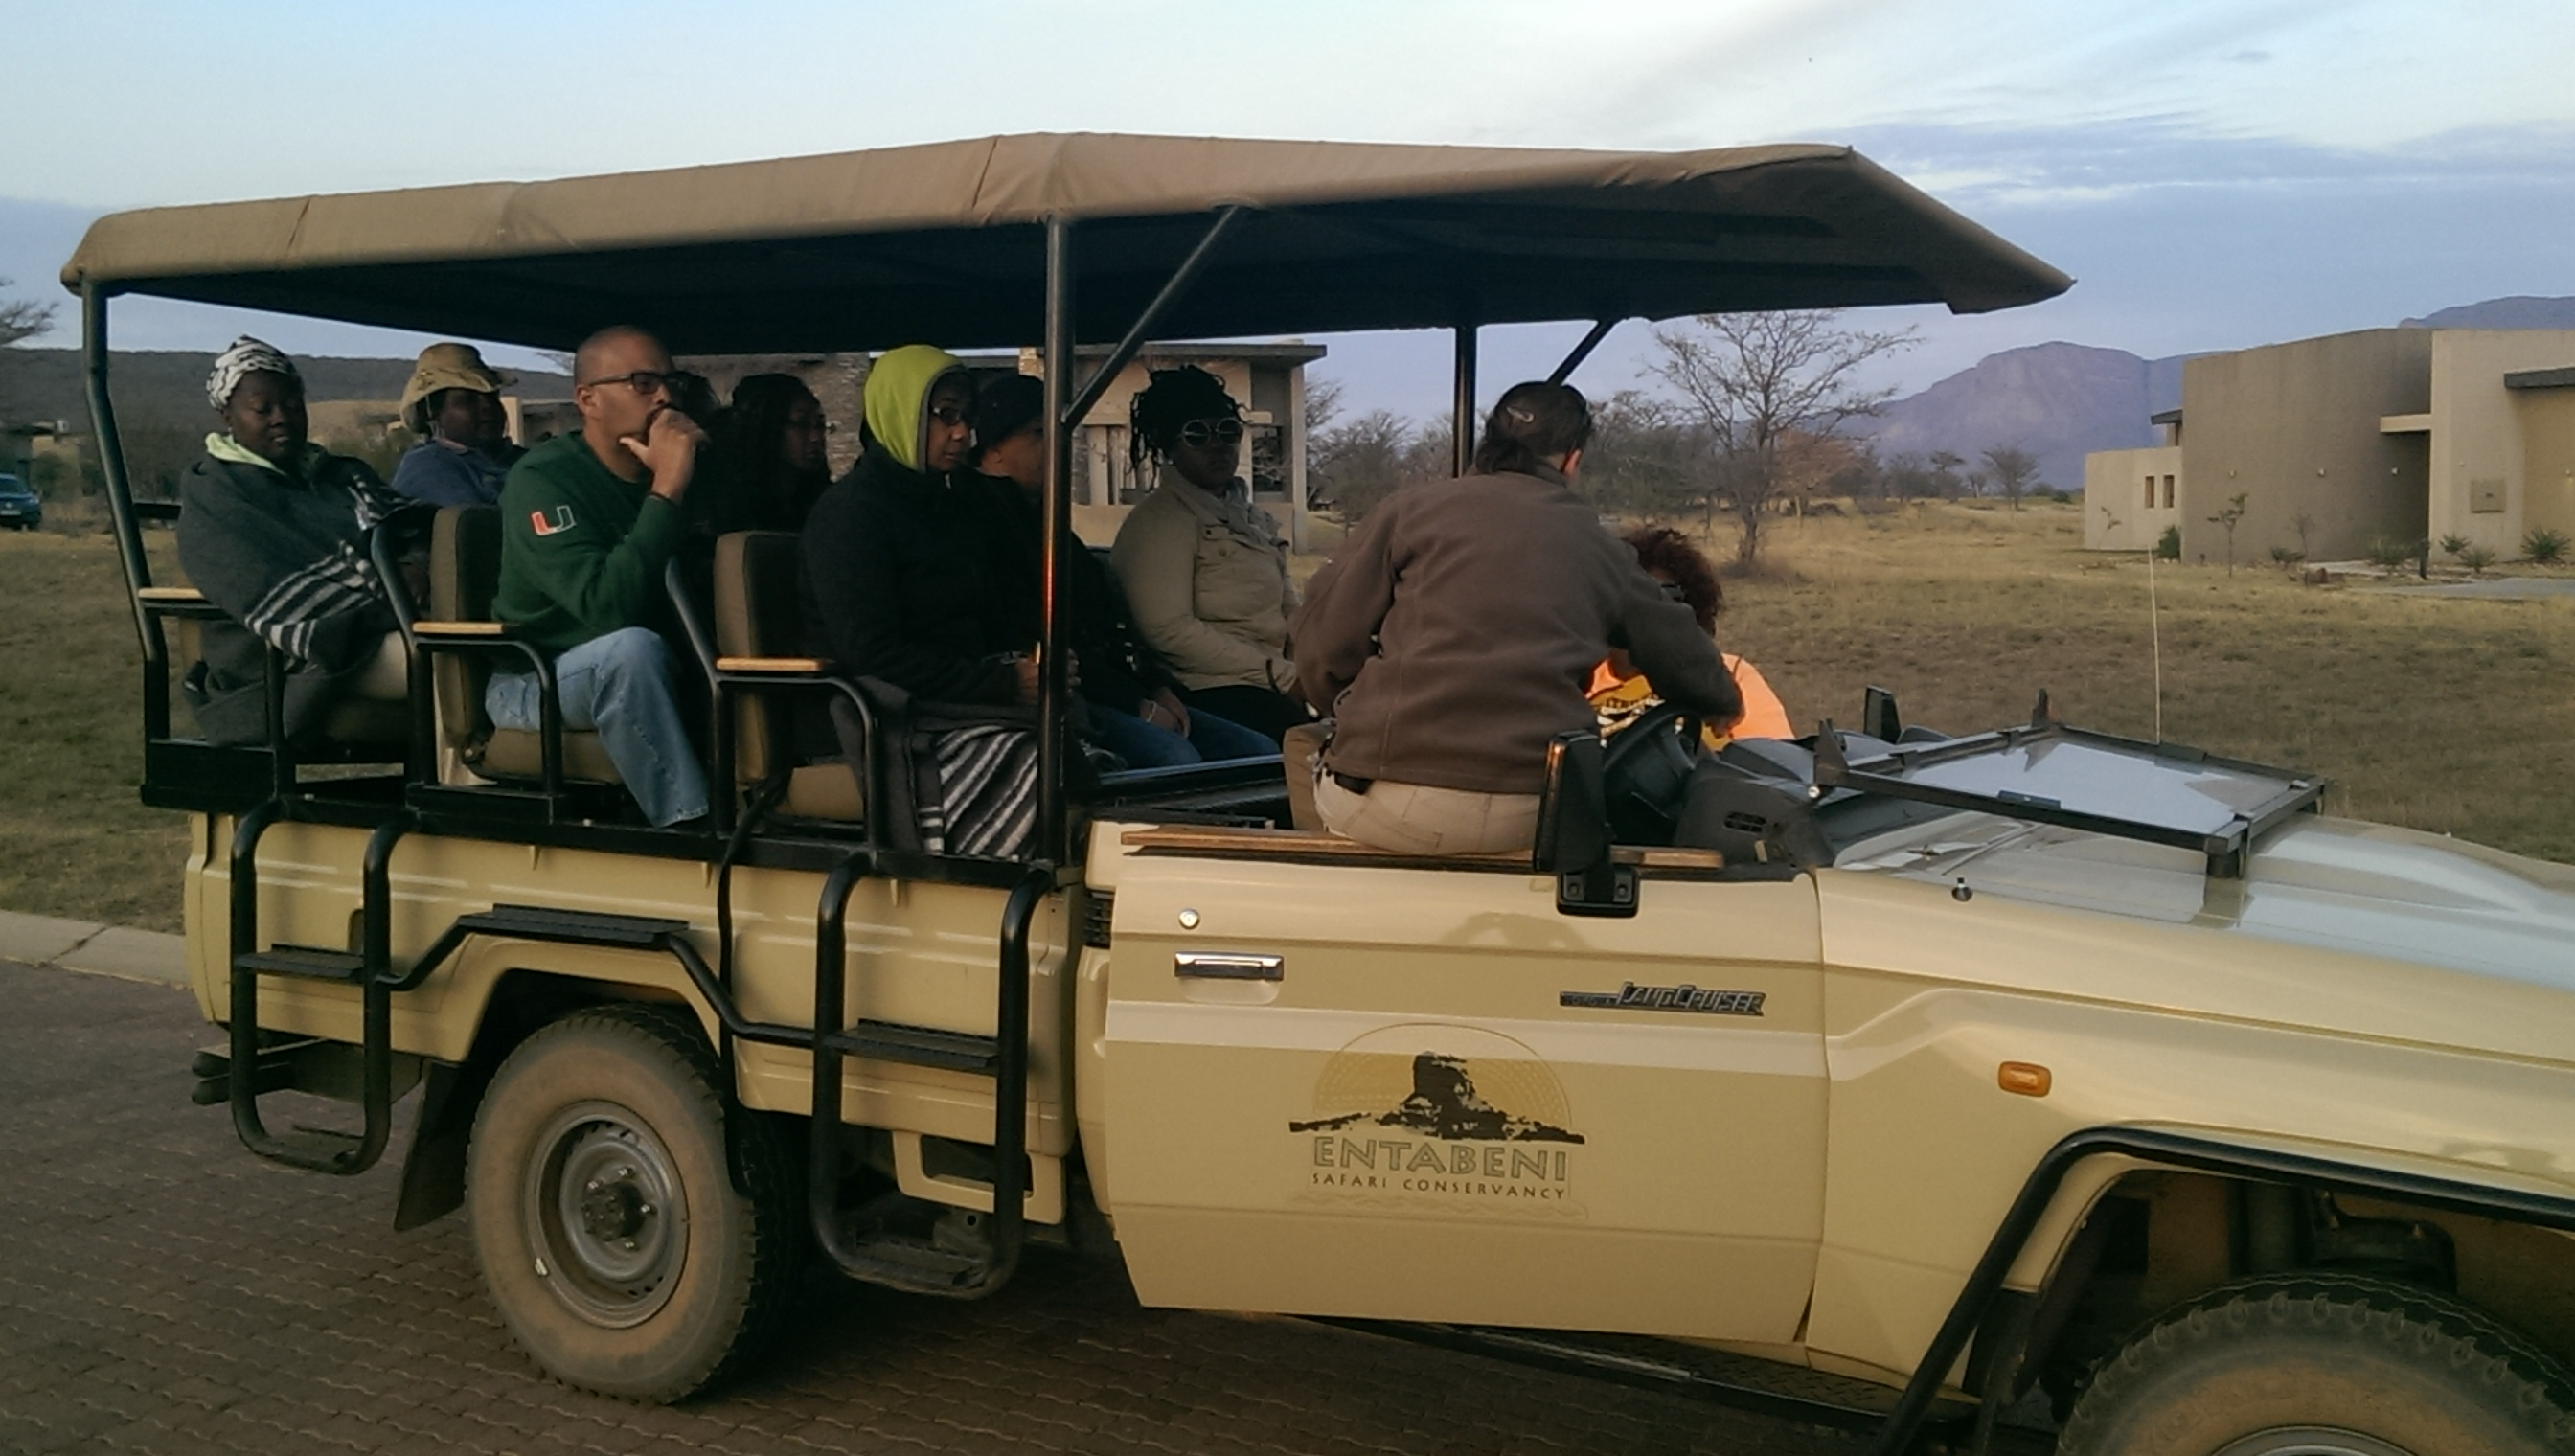 Radio show host Doug Banks on safari